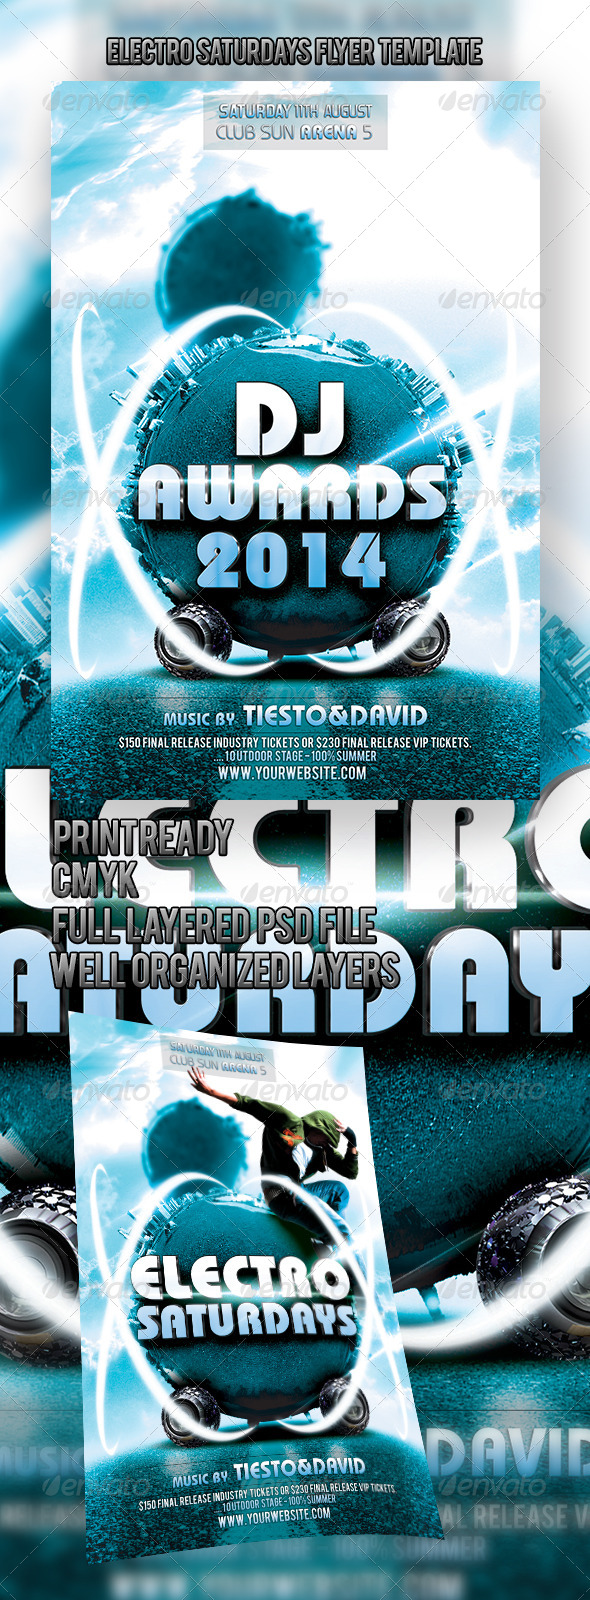 Electro Saturdays Flyer Template - Events Flyers